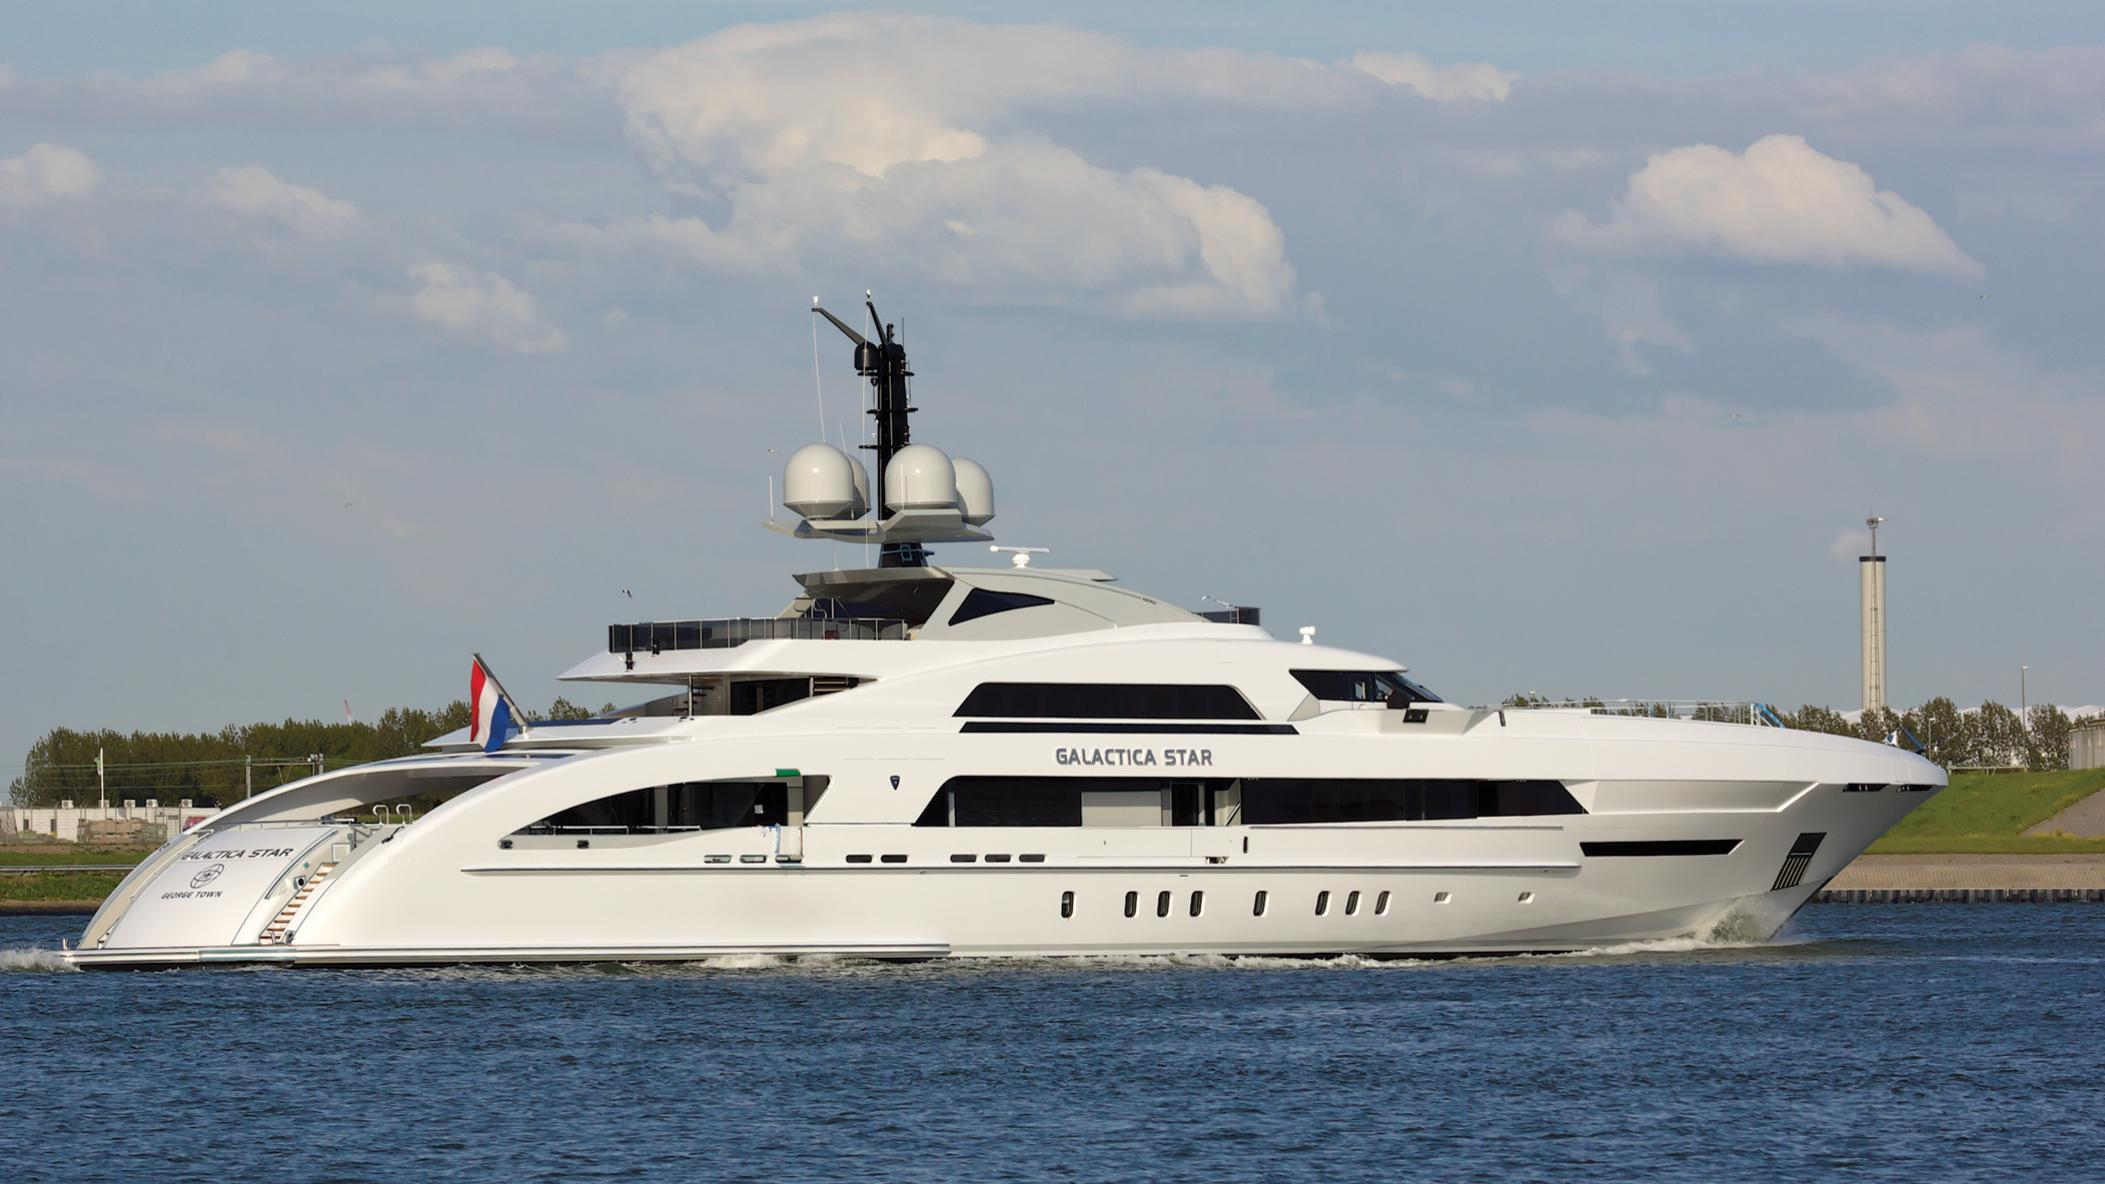 Galactica-Star-motor-yacht-heesen-2013-65m-profile-moored